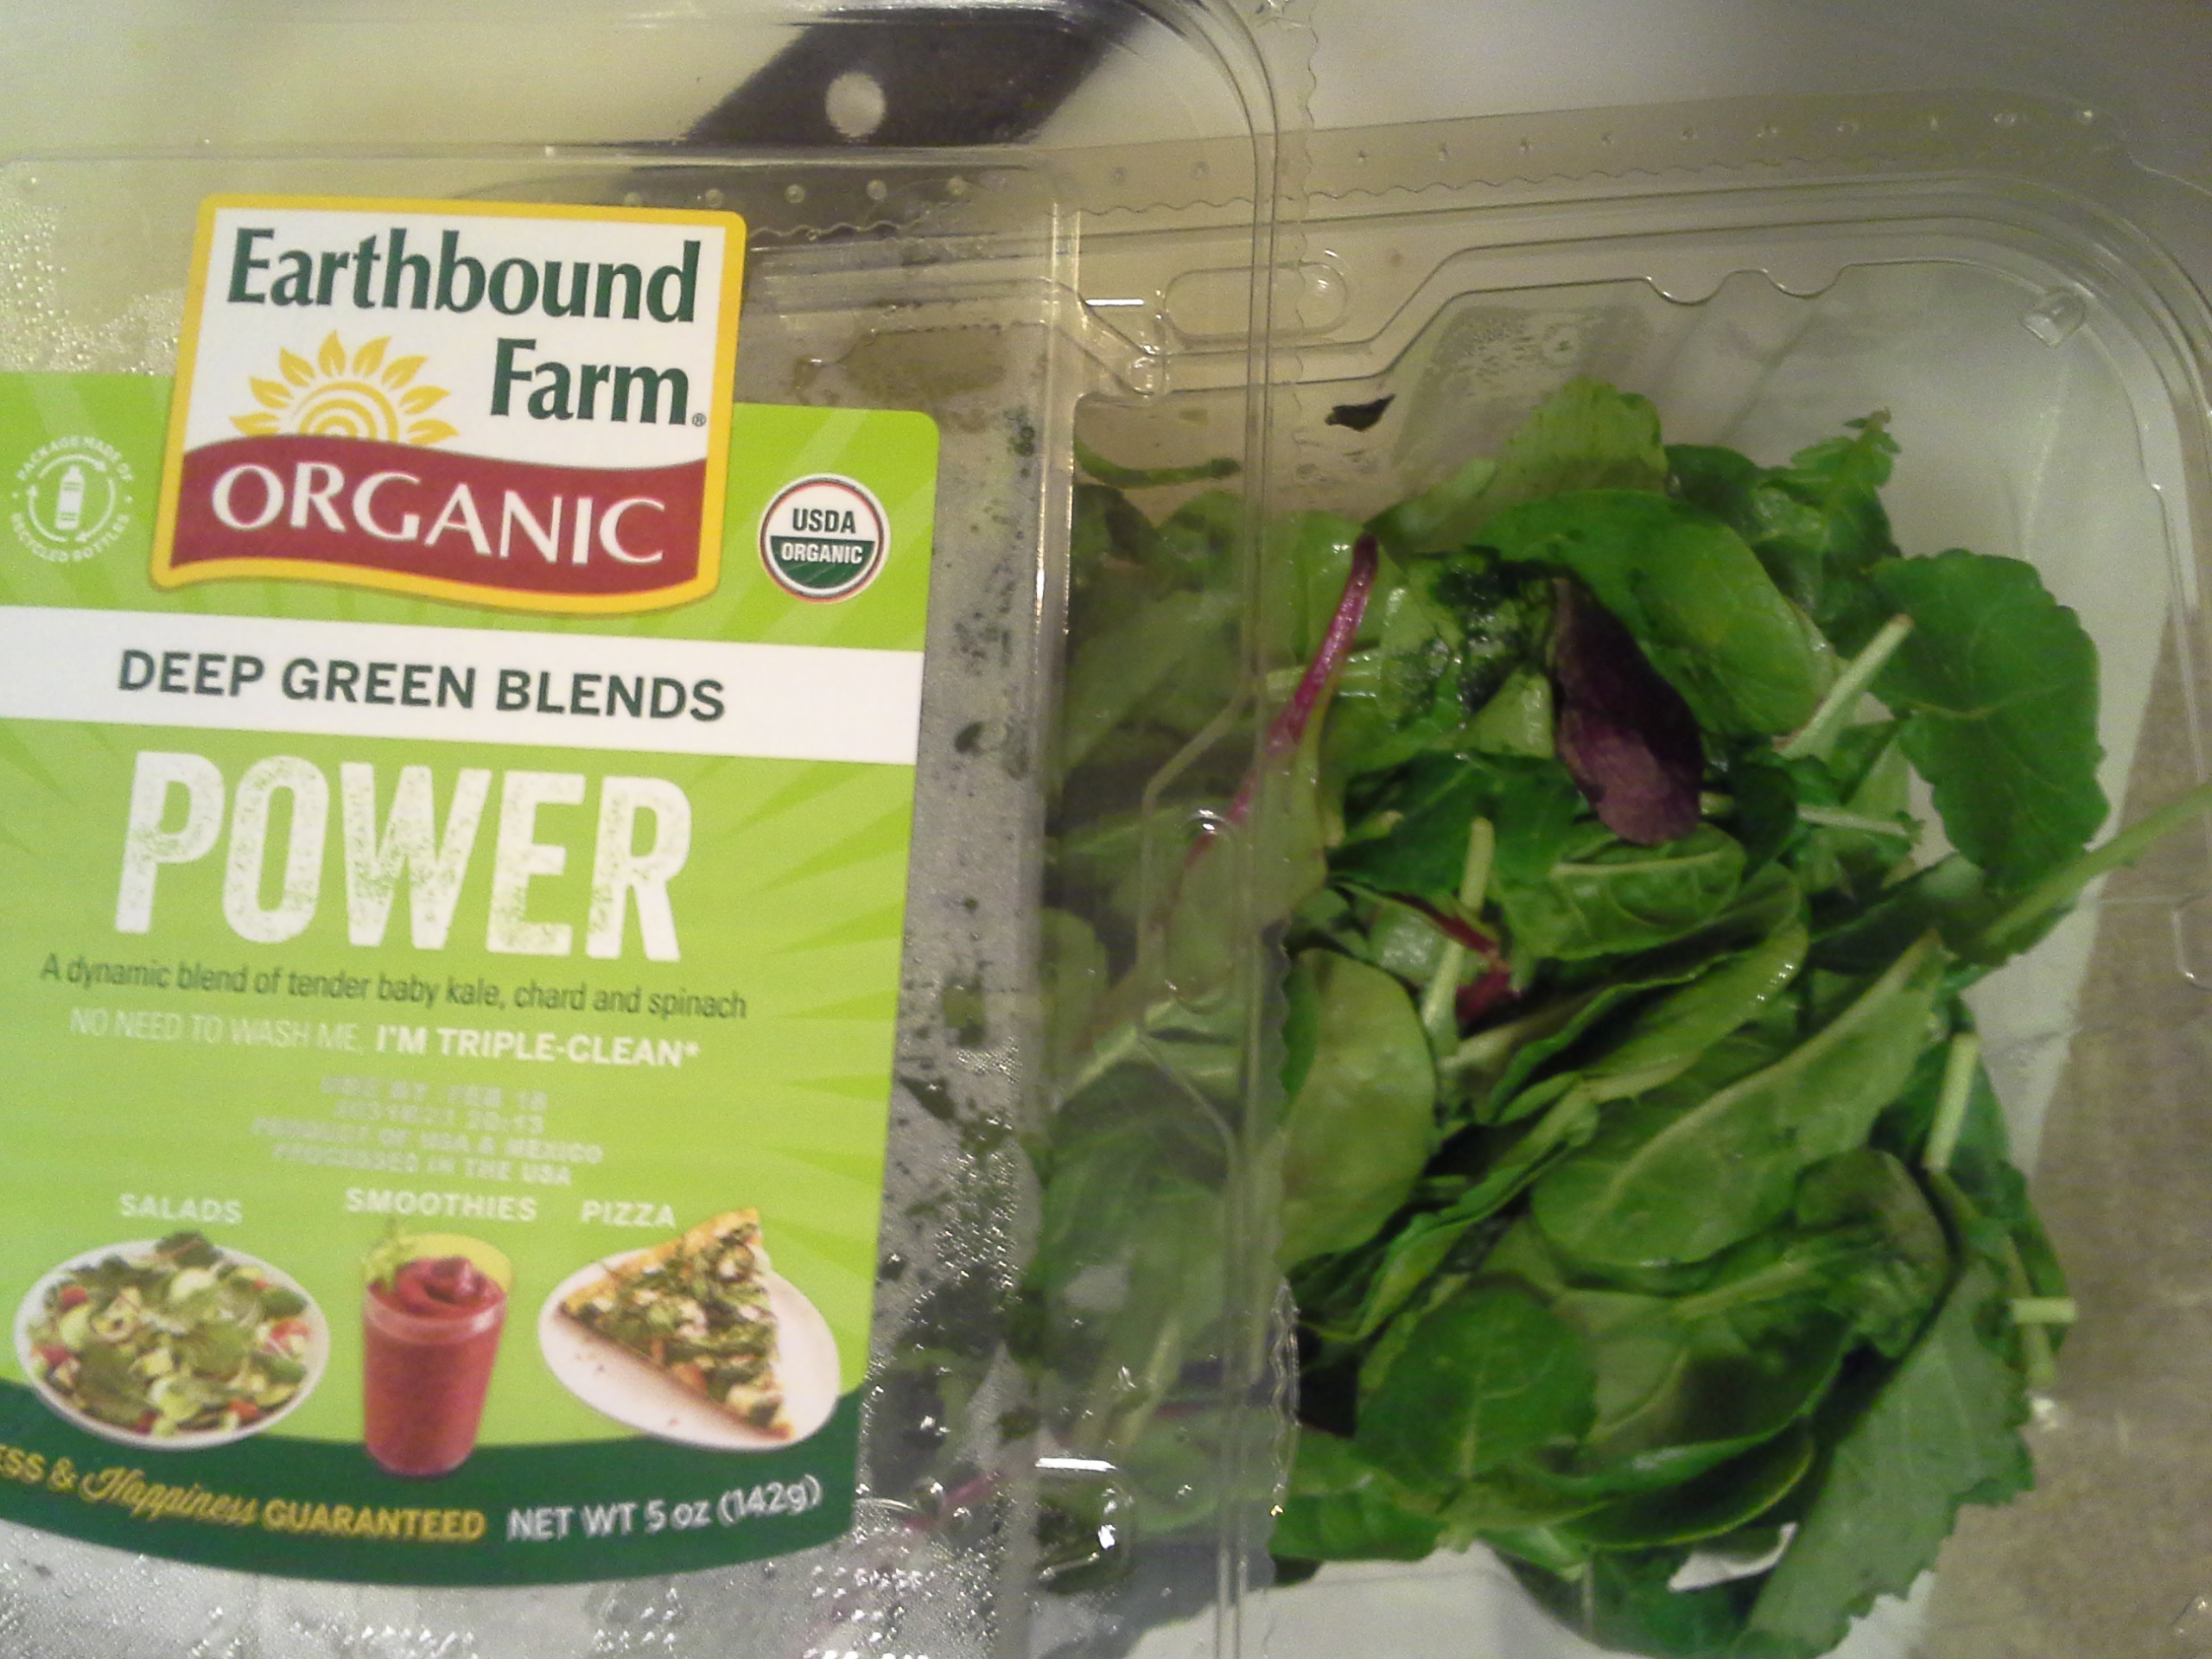 Add about 2 oz. of greens (in this case, baby kale/chard/spinach)